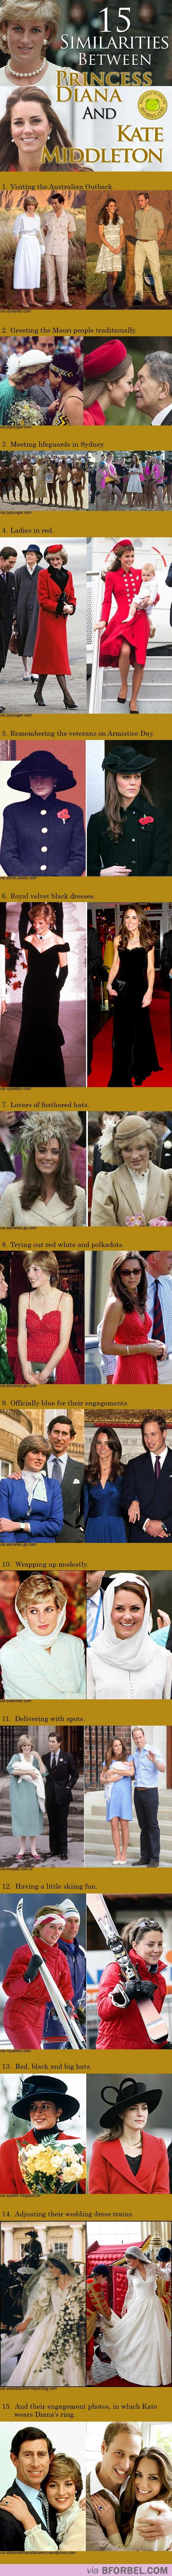 15 Similarities Between Princess Diana And Kate Middleton. I don't think it's just coincidence - William would naturally choose someone so similar.